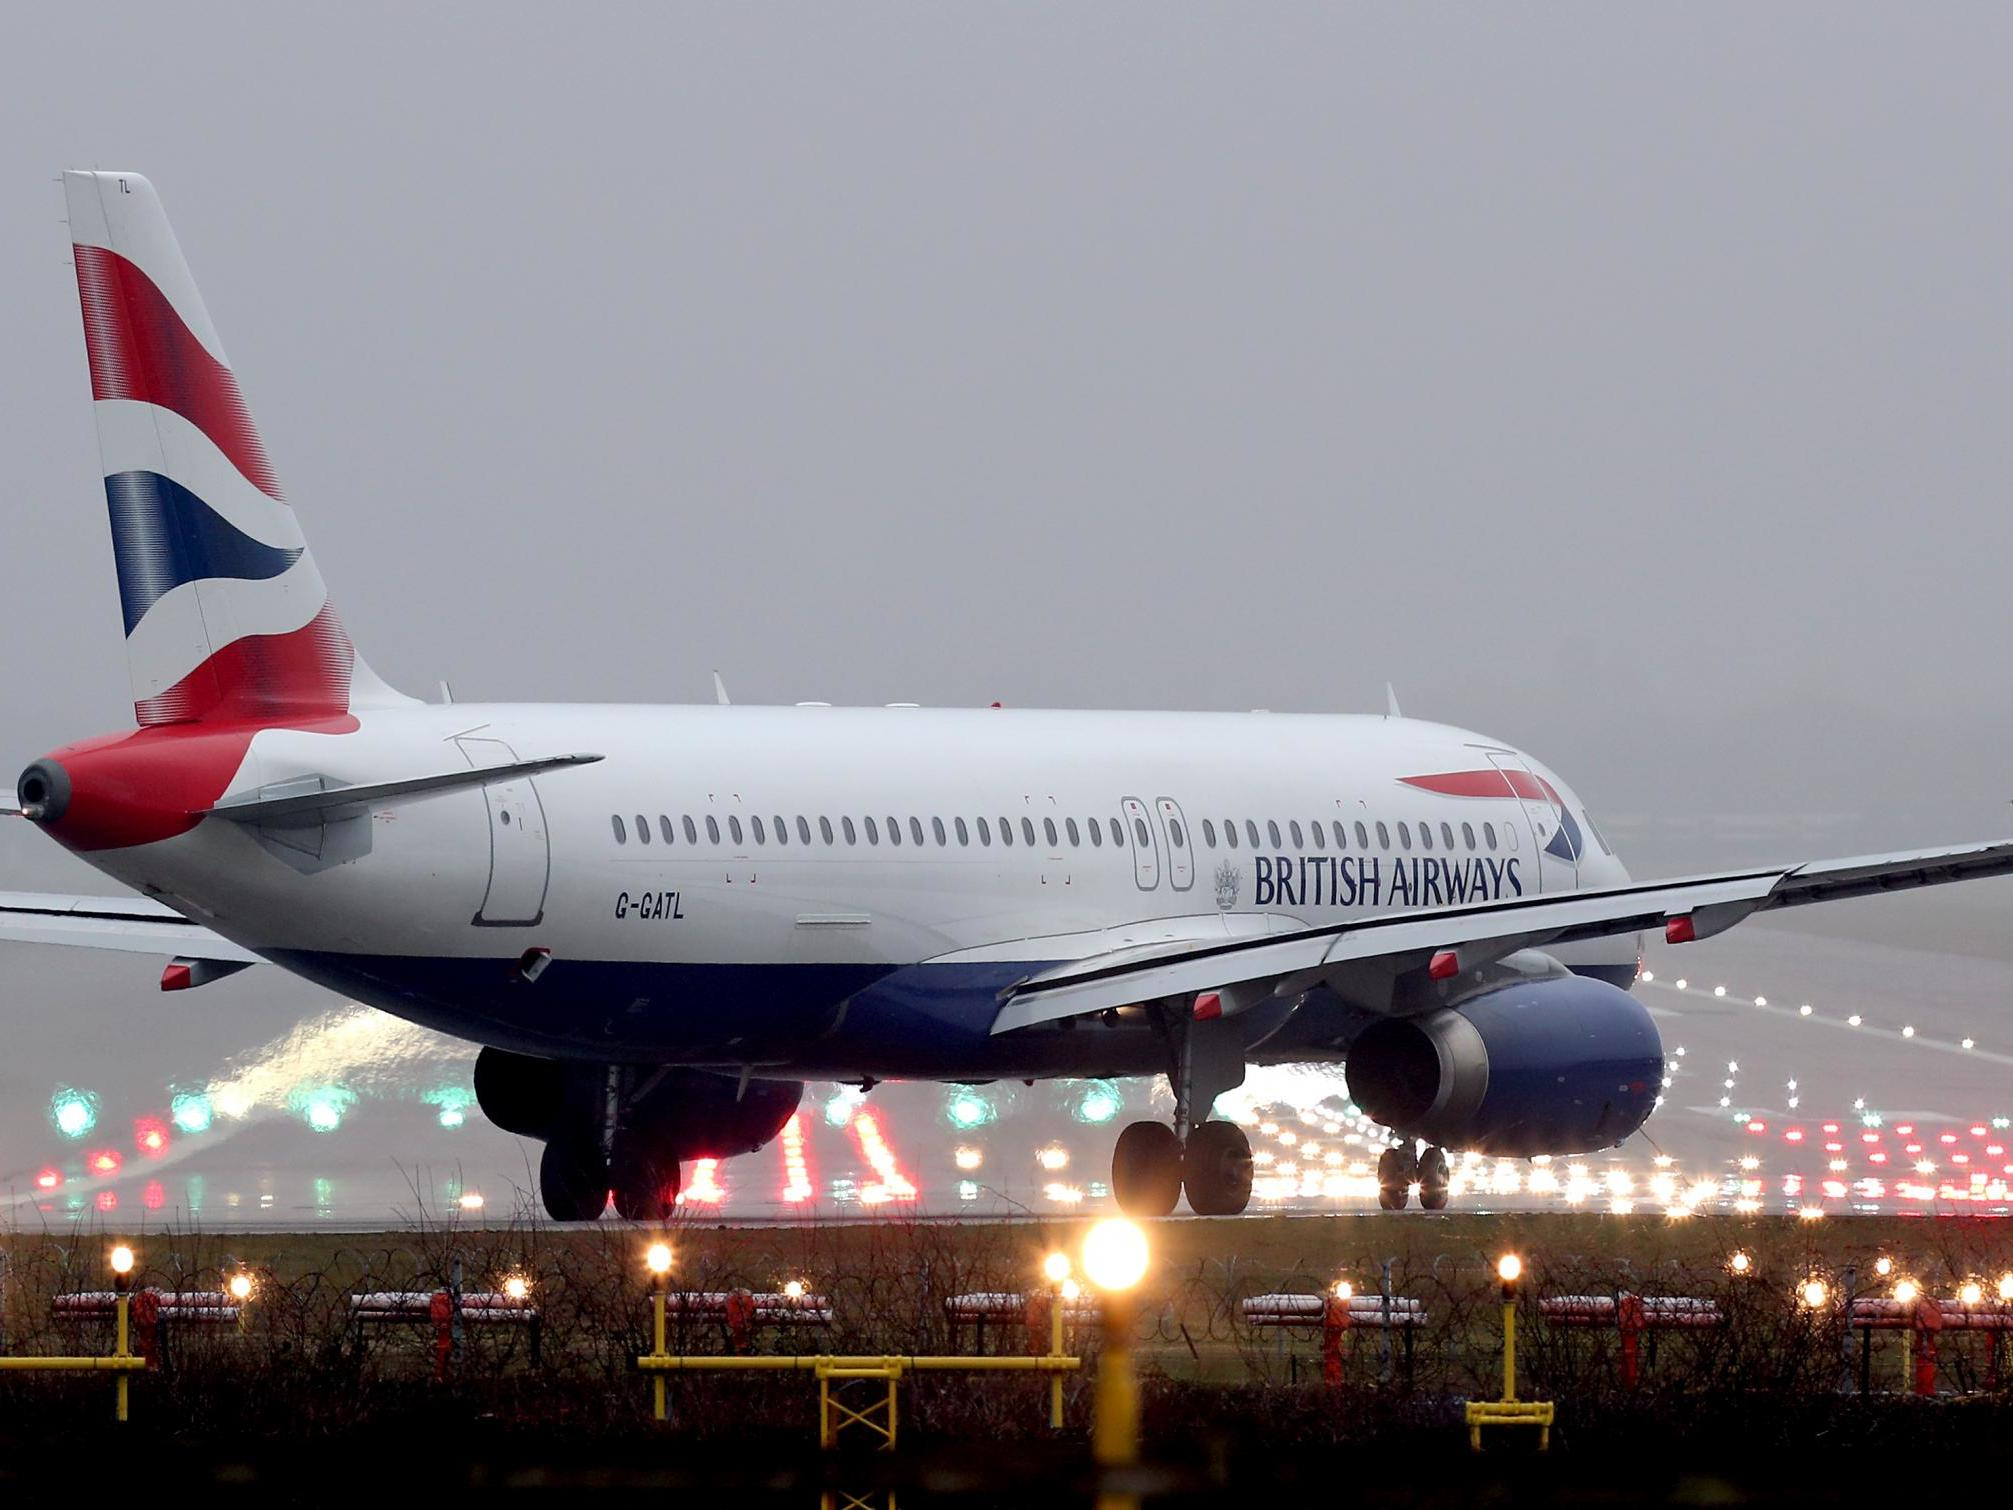 BA data breach: What does the British Airways hack mean for